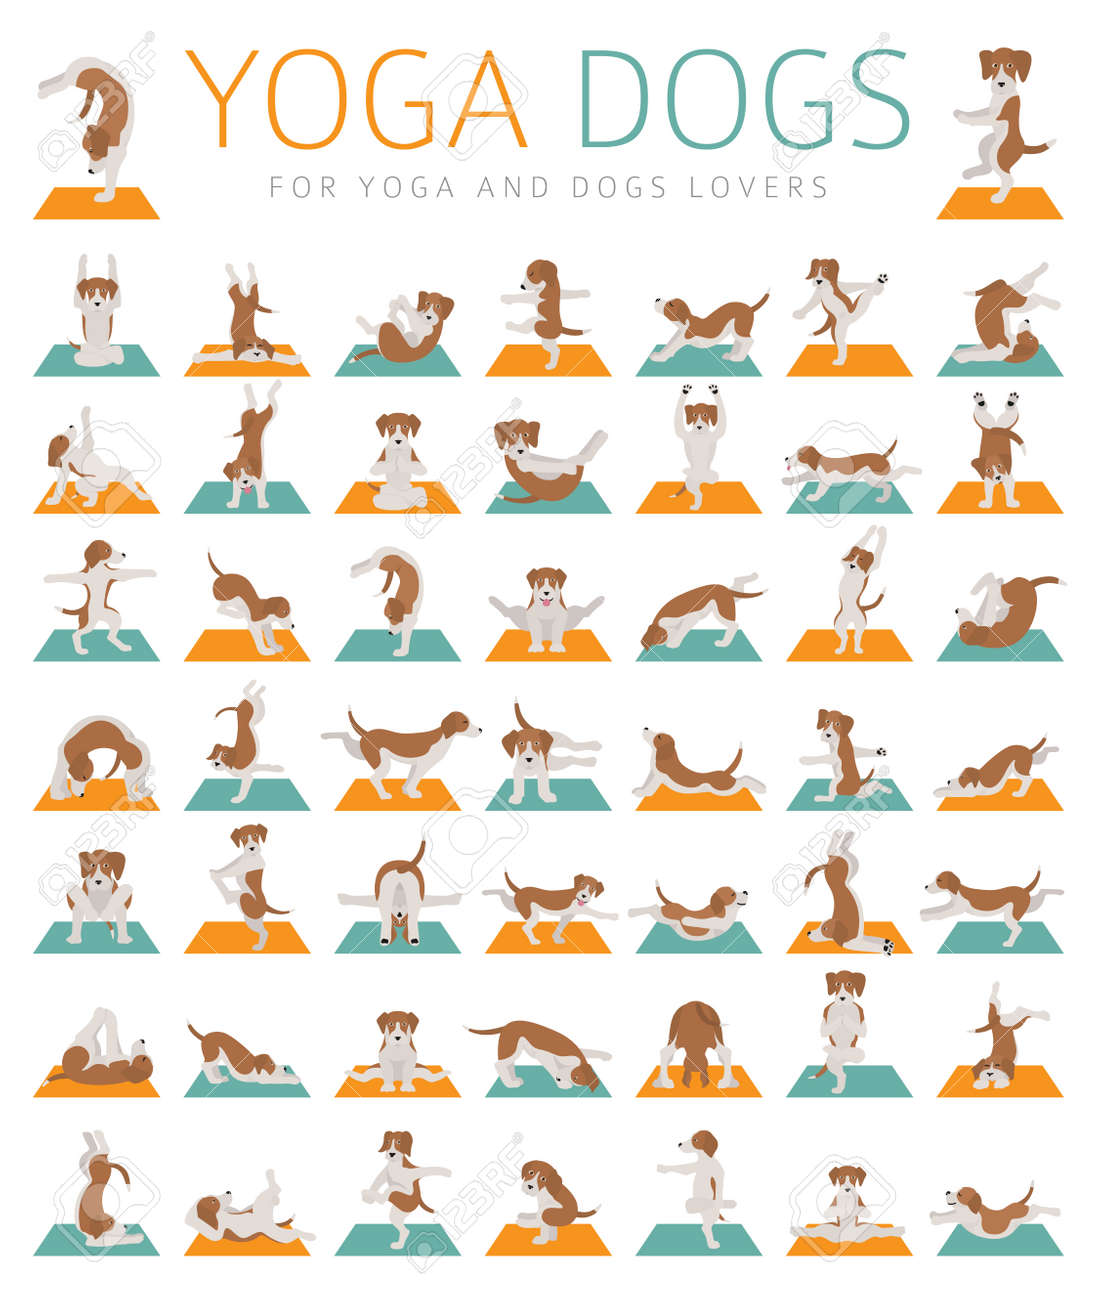 Yoga dogs poses and exercises doing clipart. Funny cartoon poster..